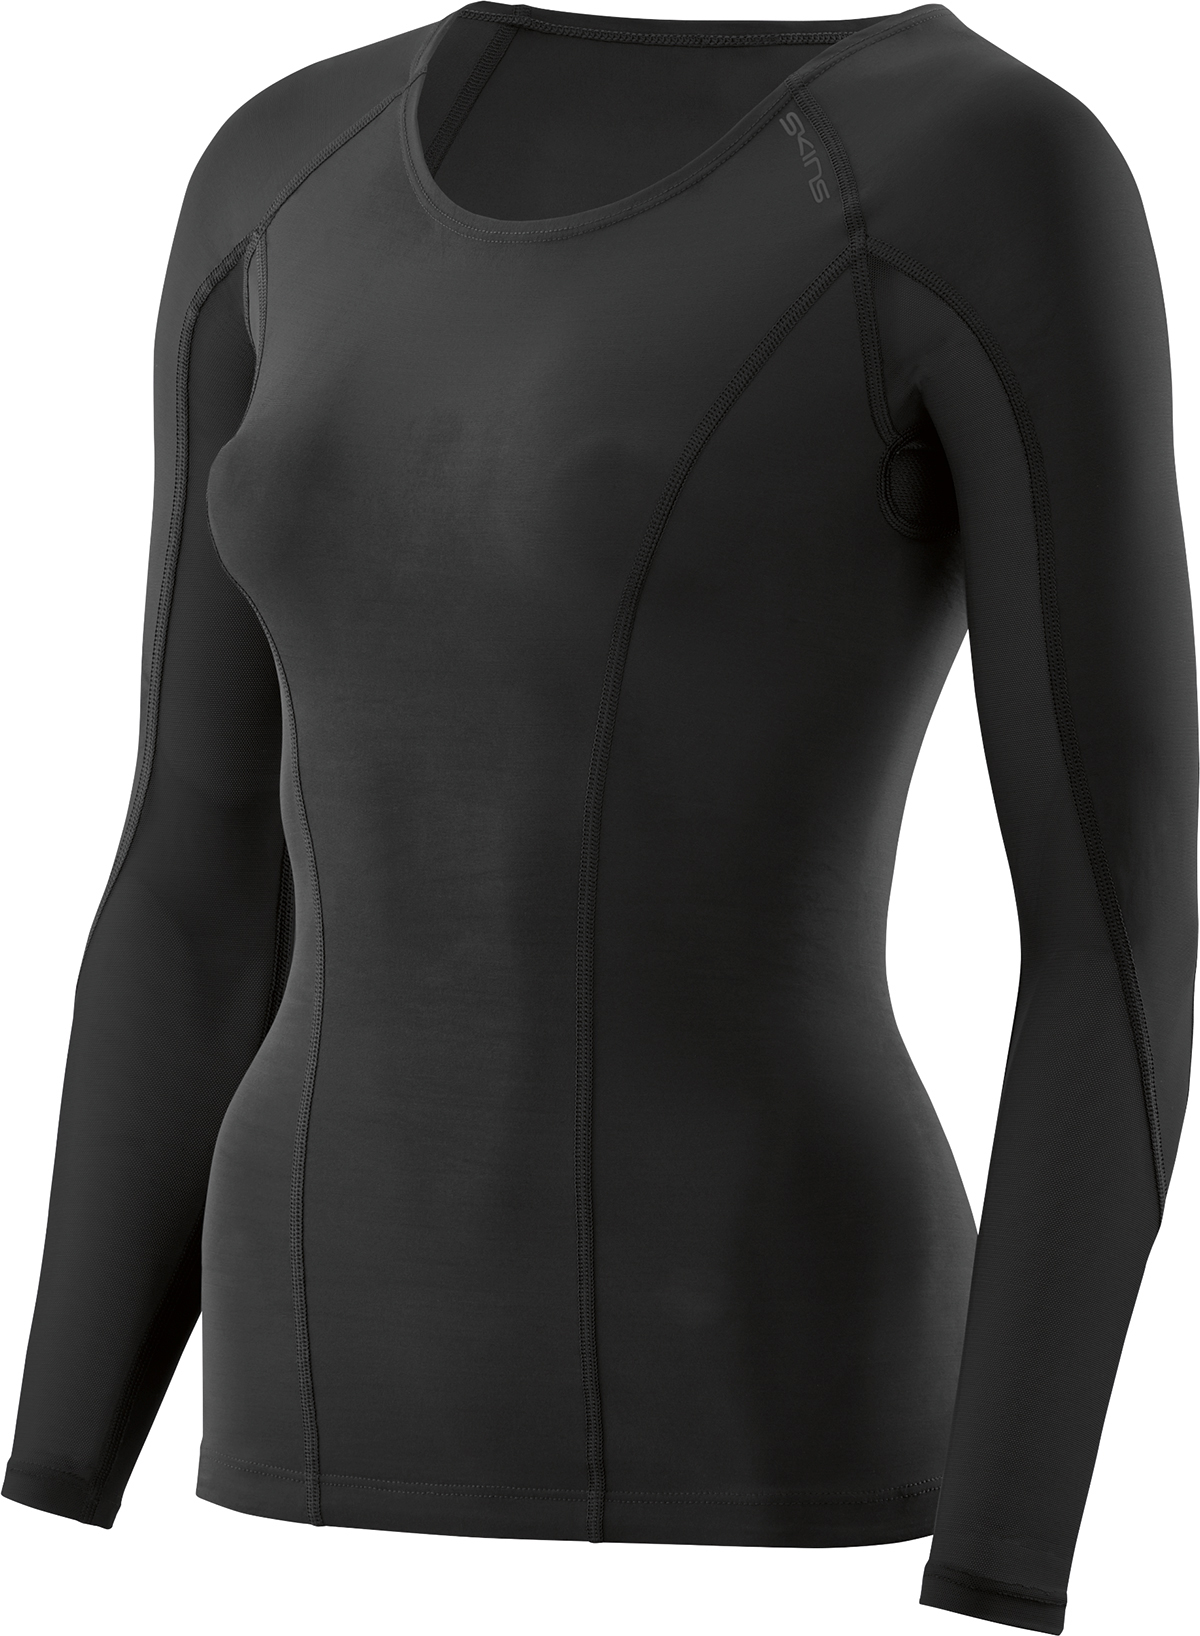 SKINS Women's DNAmic Long Sleeve Top | Compression